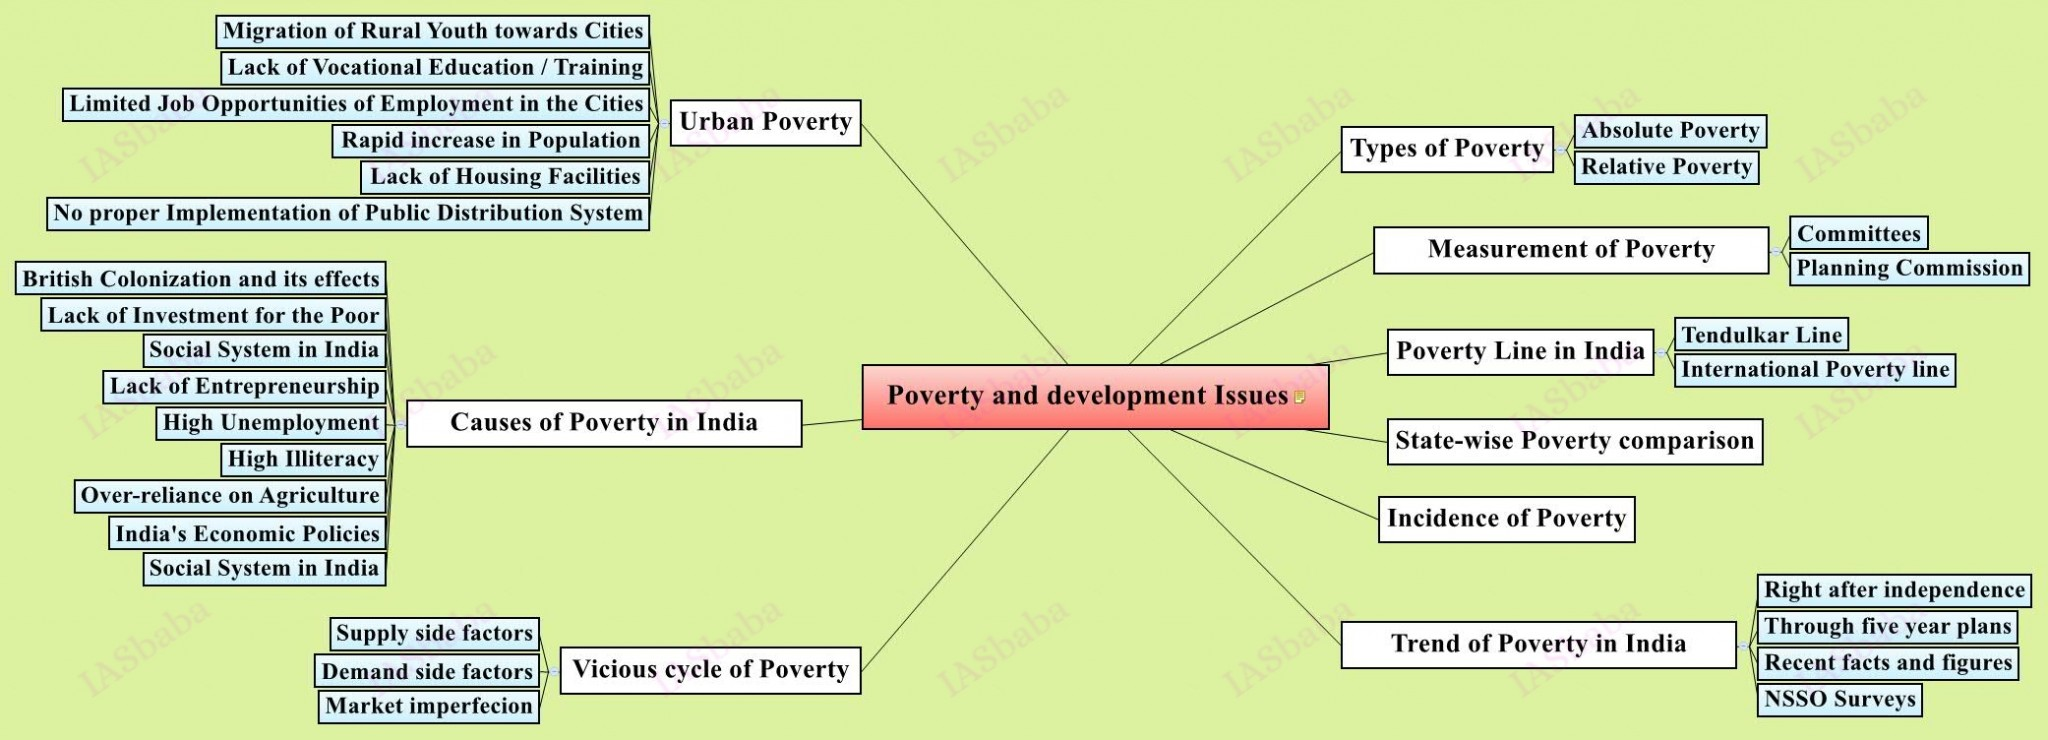 Poverty and development Issues